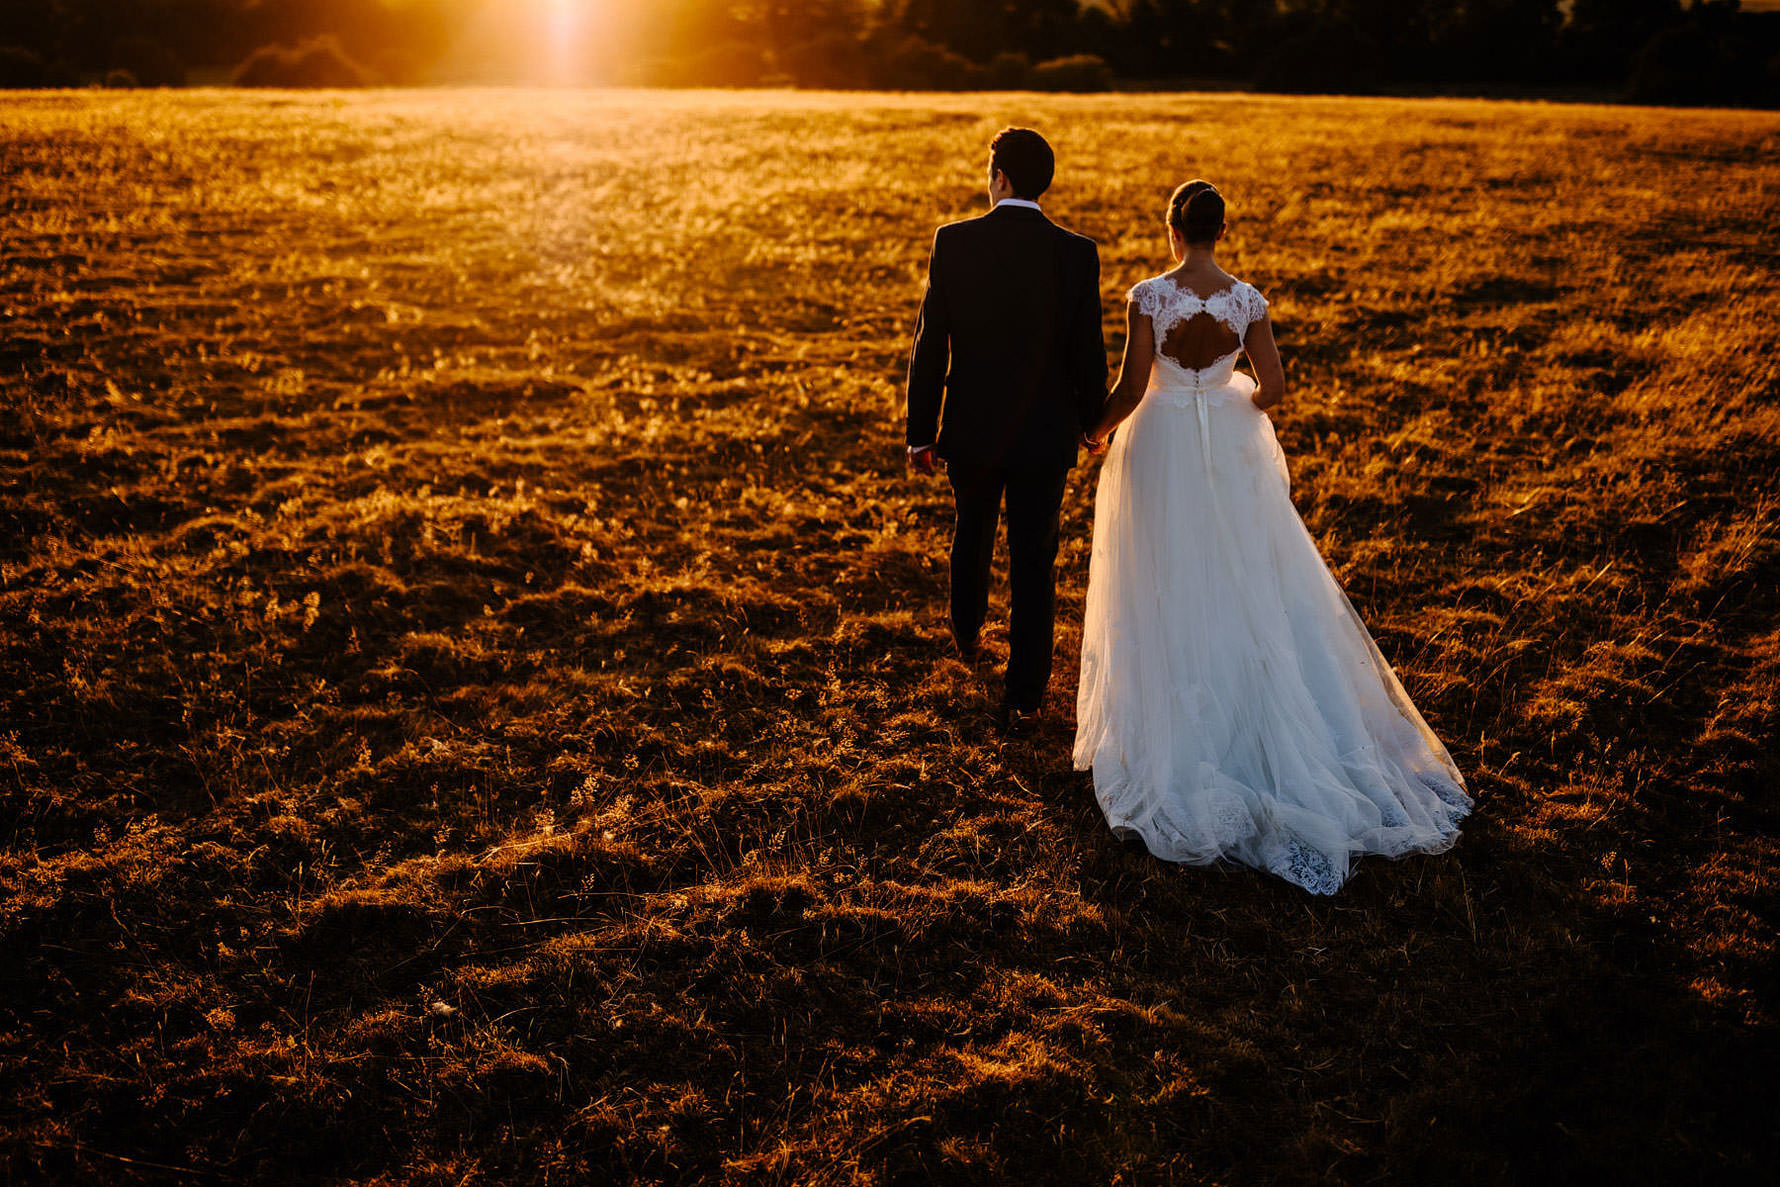 a bride and groom walking into the sunset